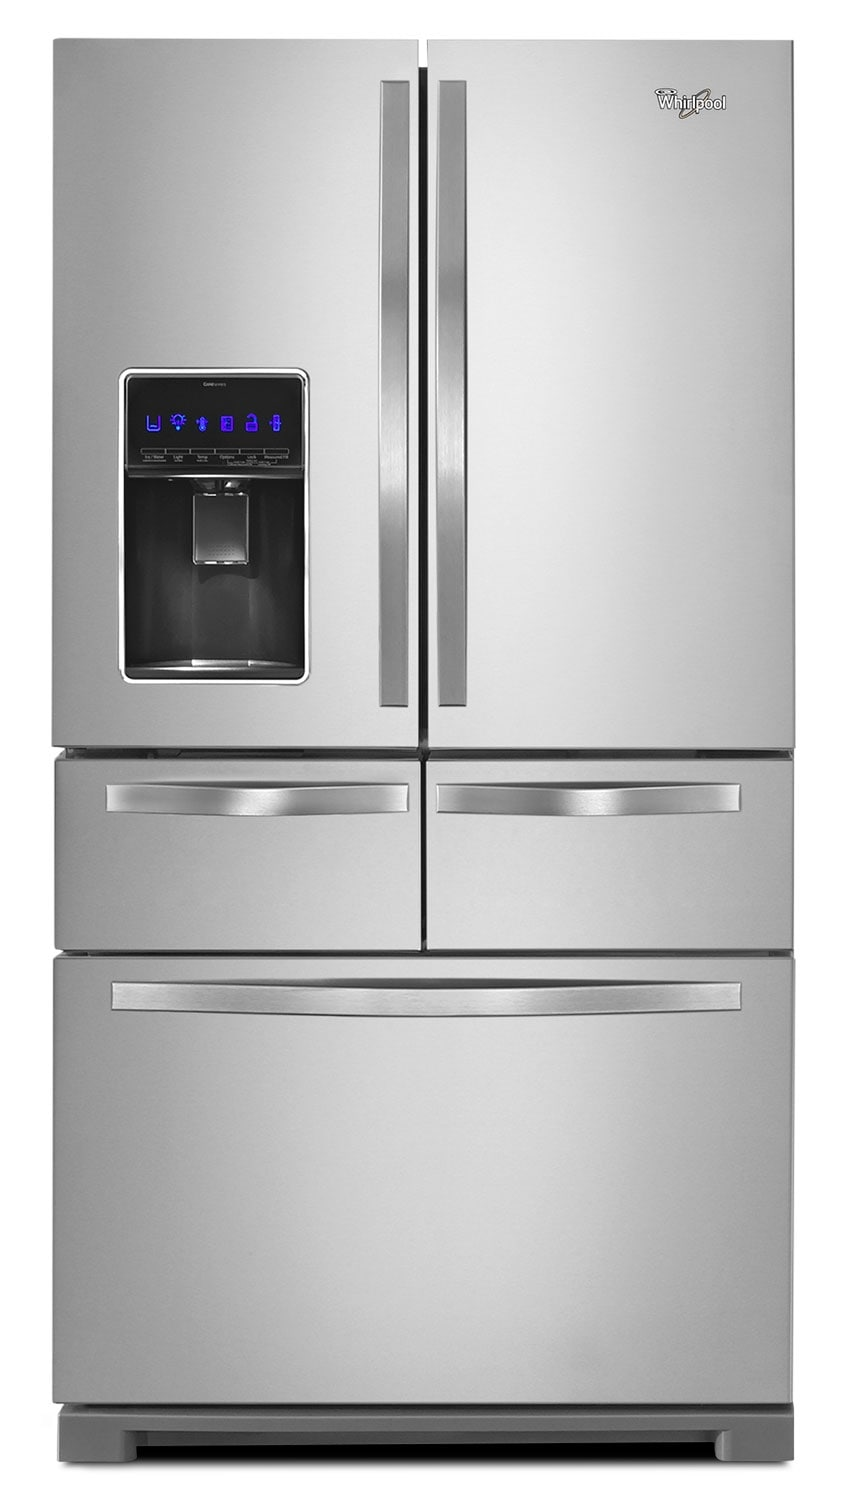 Refrigerators and Freezers - Whirlpool 26 Cu. Ft. Double Drawer Refrigerator – WRV986FDEM